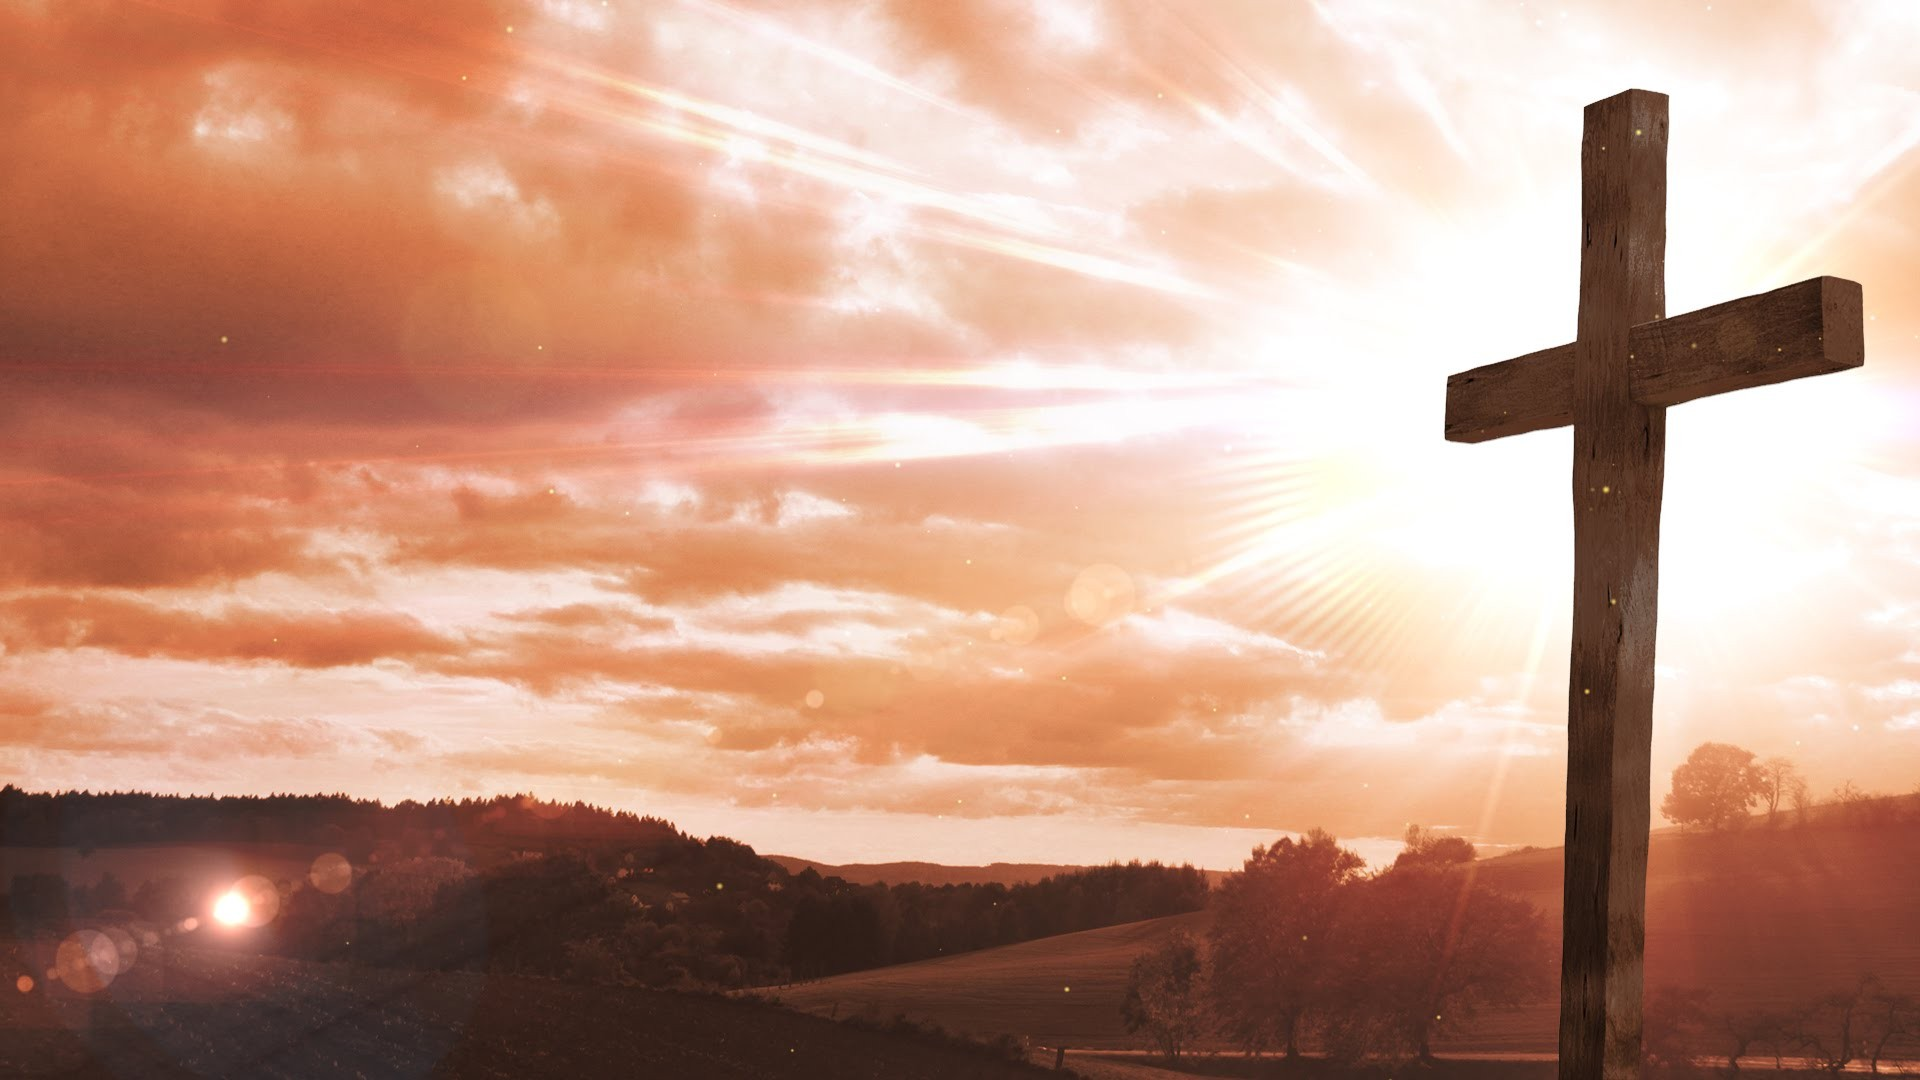 cross background download free cool hd backgrounds for desktop